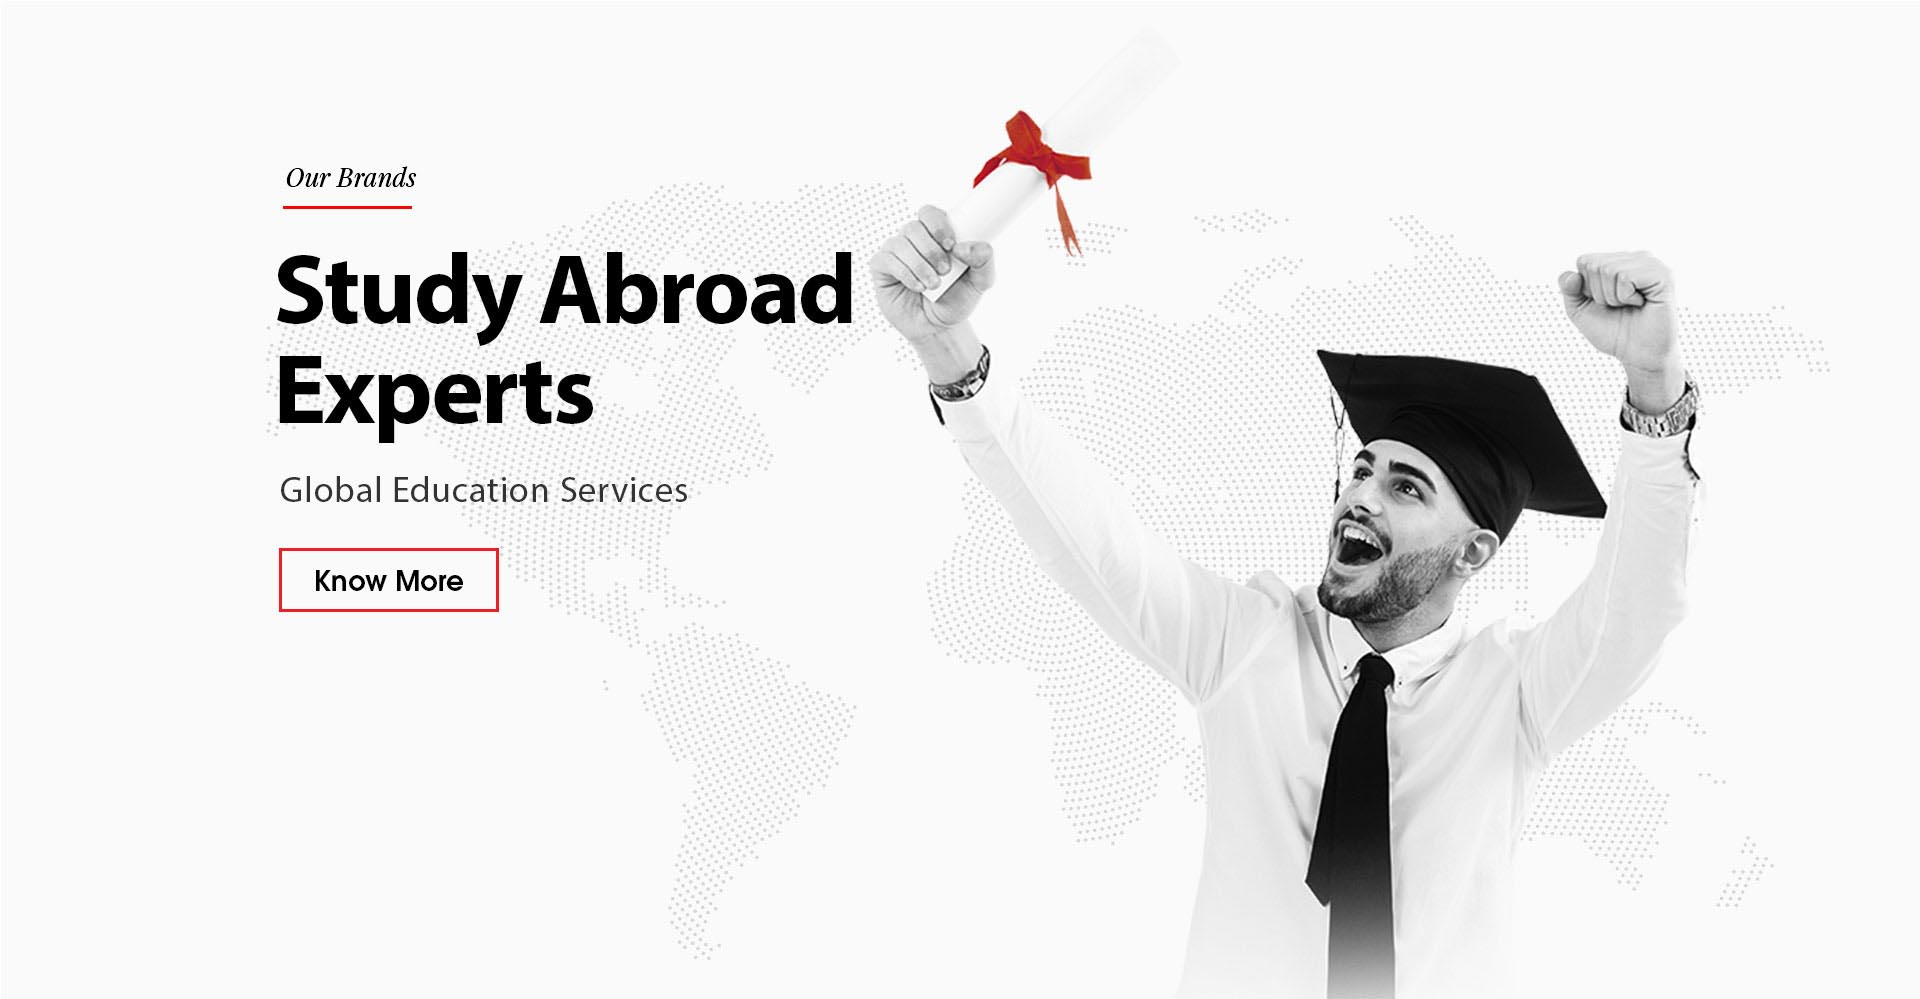 Study Abroad Experts